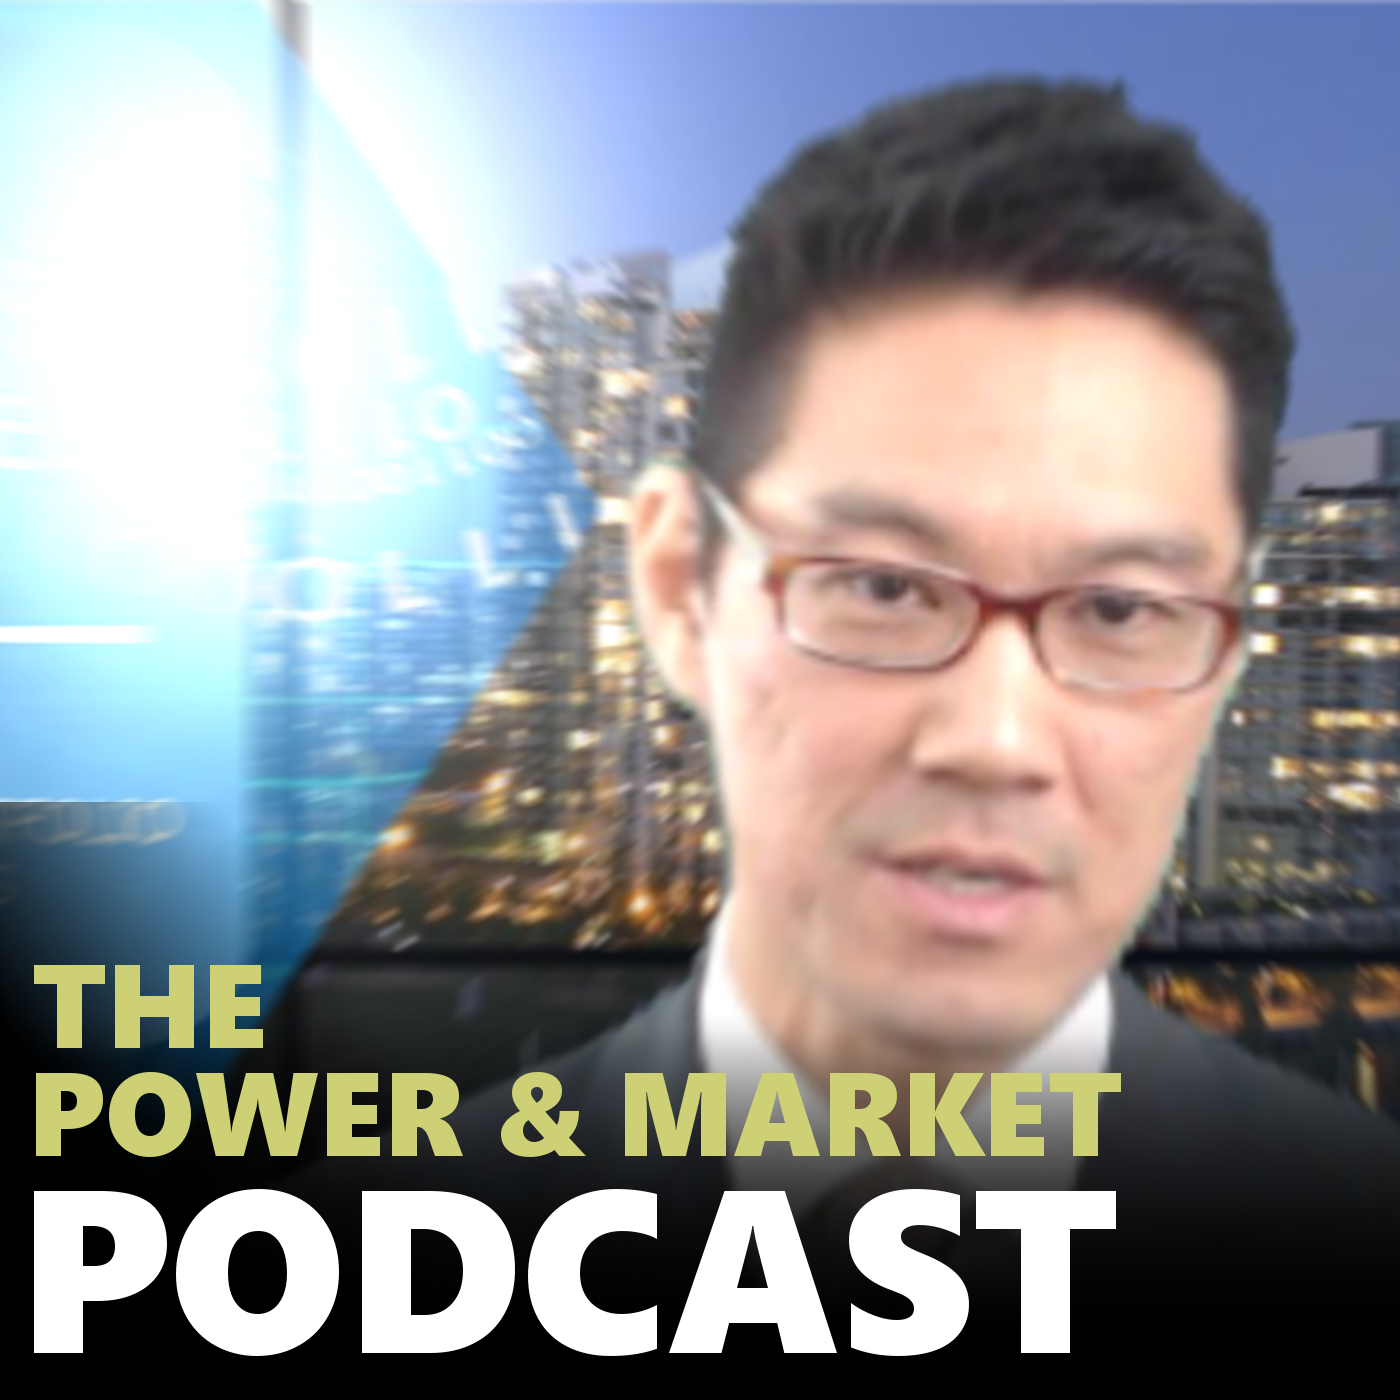 Power & Market Videocast